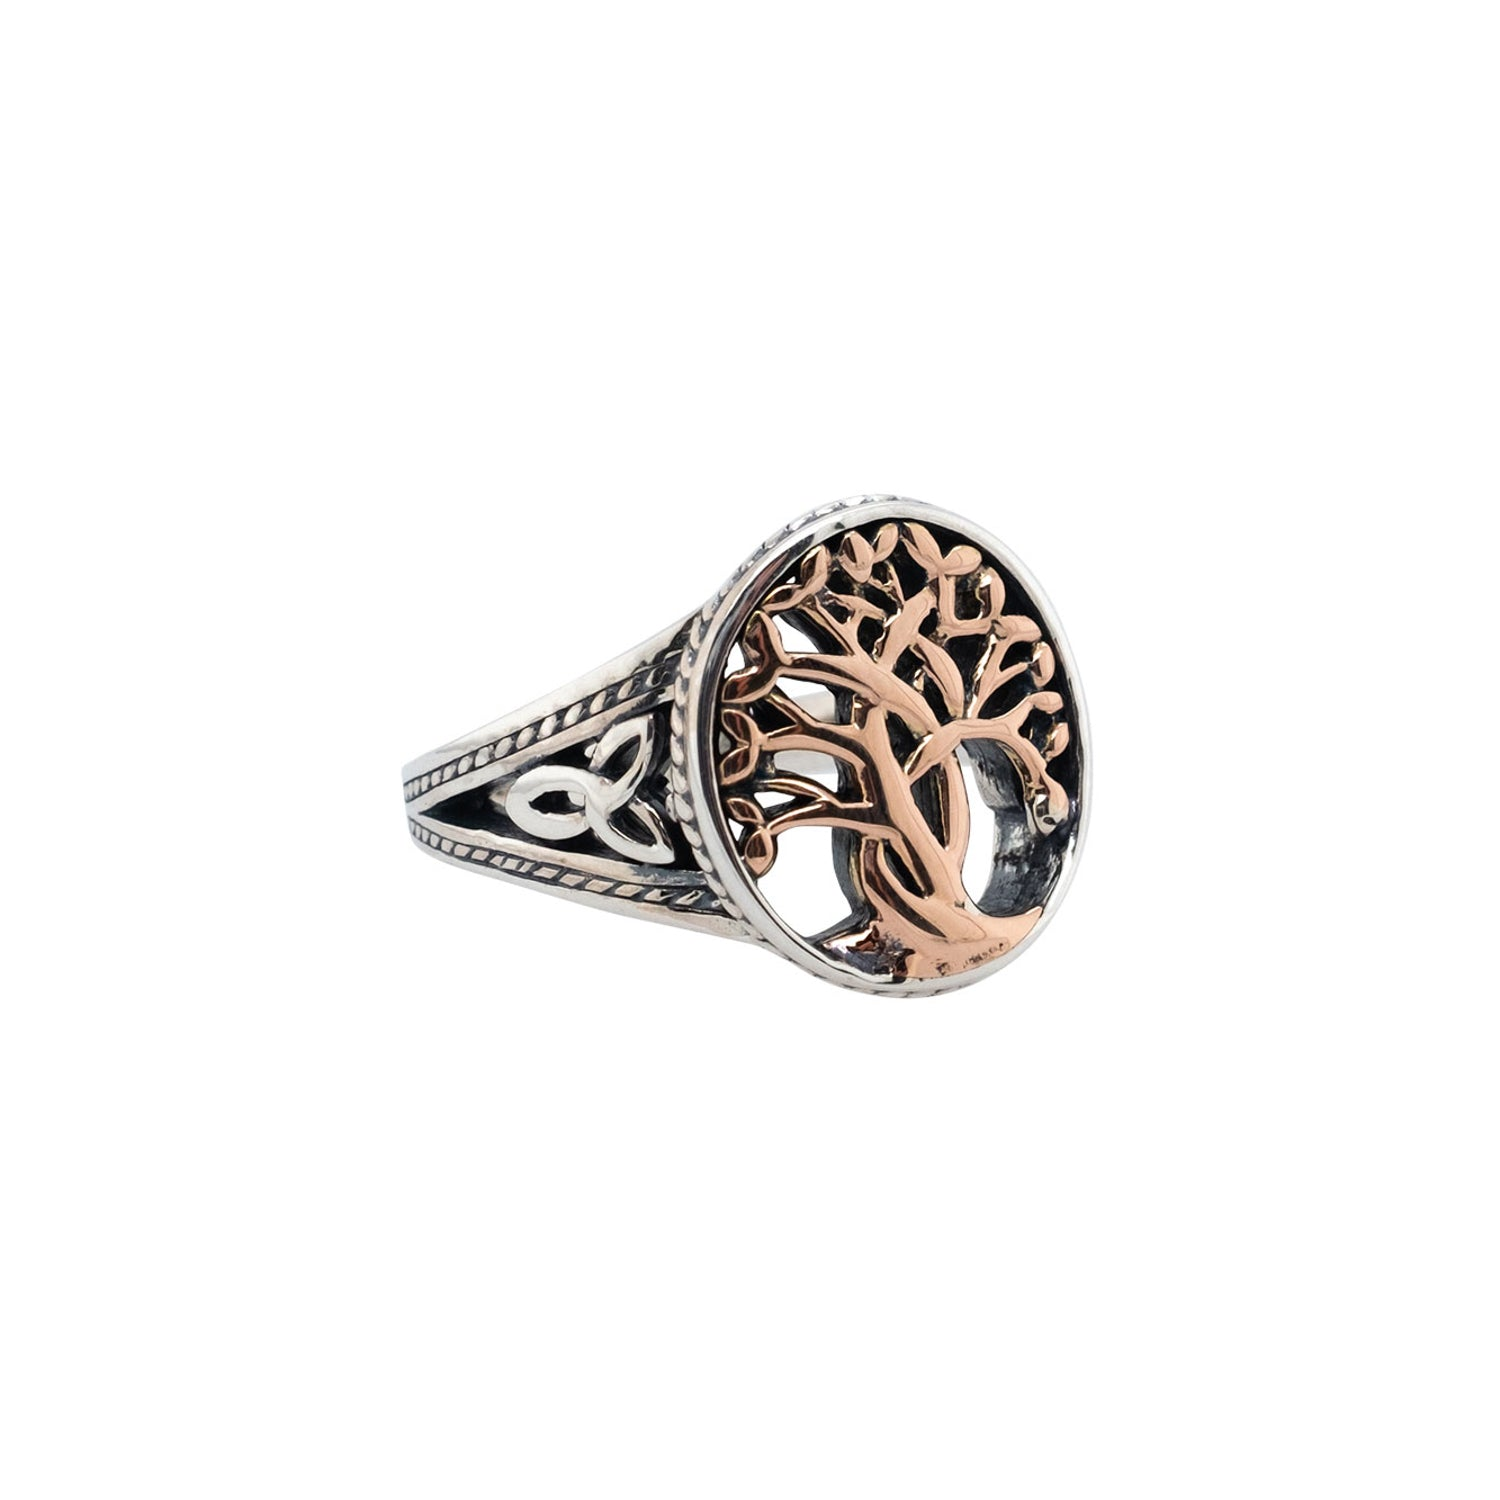 Ring Bands 10k Rose gold Tree of Life Ring (Tapered) from welch and company jewelers near syracuse ny